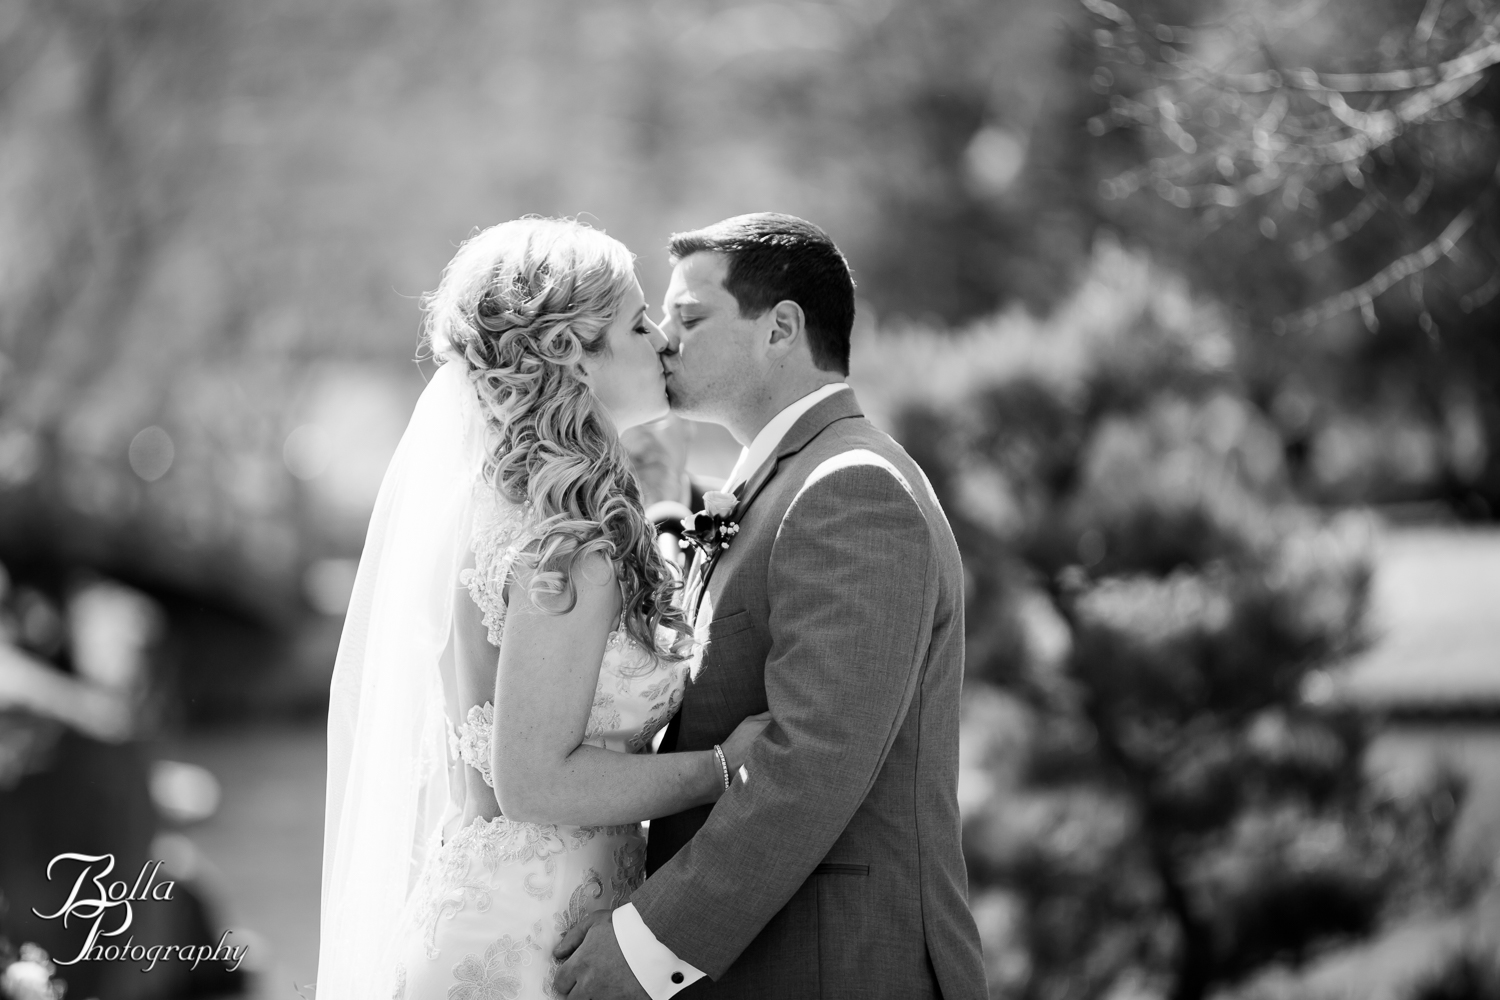 Bolla_Photography_St_Louis_wedding_photographer_Morgando_Blues_hockey_Botanical_Gardens_spring-0213.jpg